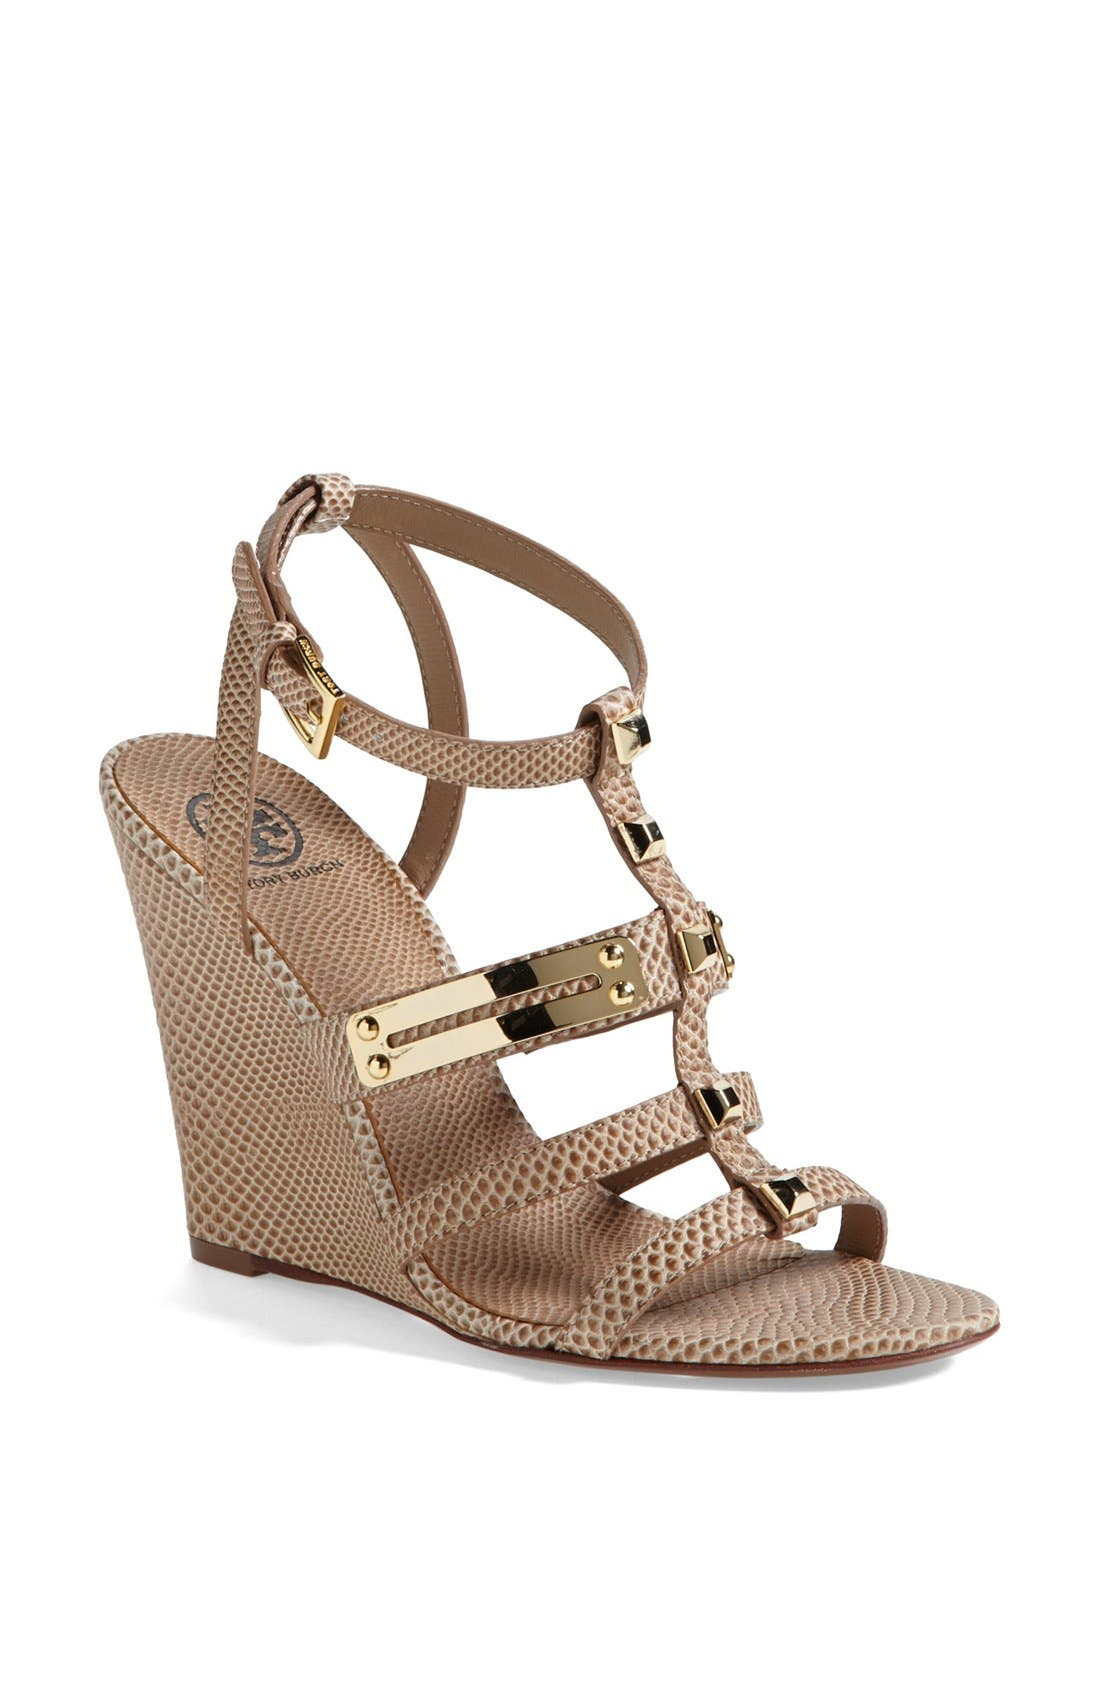 Main Image - Tory Burch 'Iliana' Wedge Sandal (Online Only)